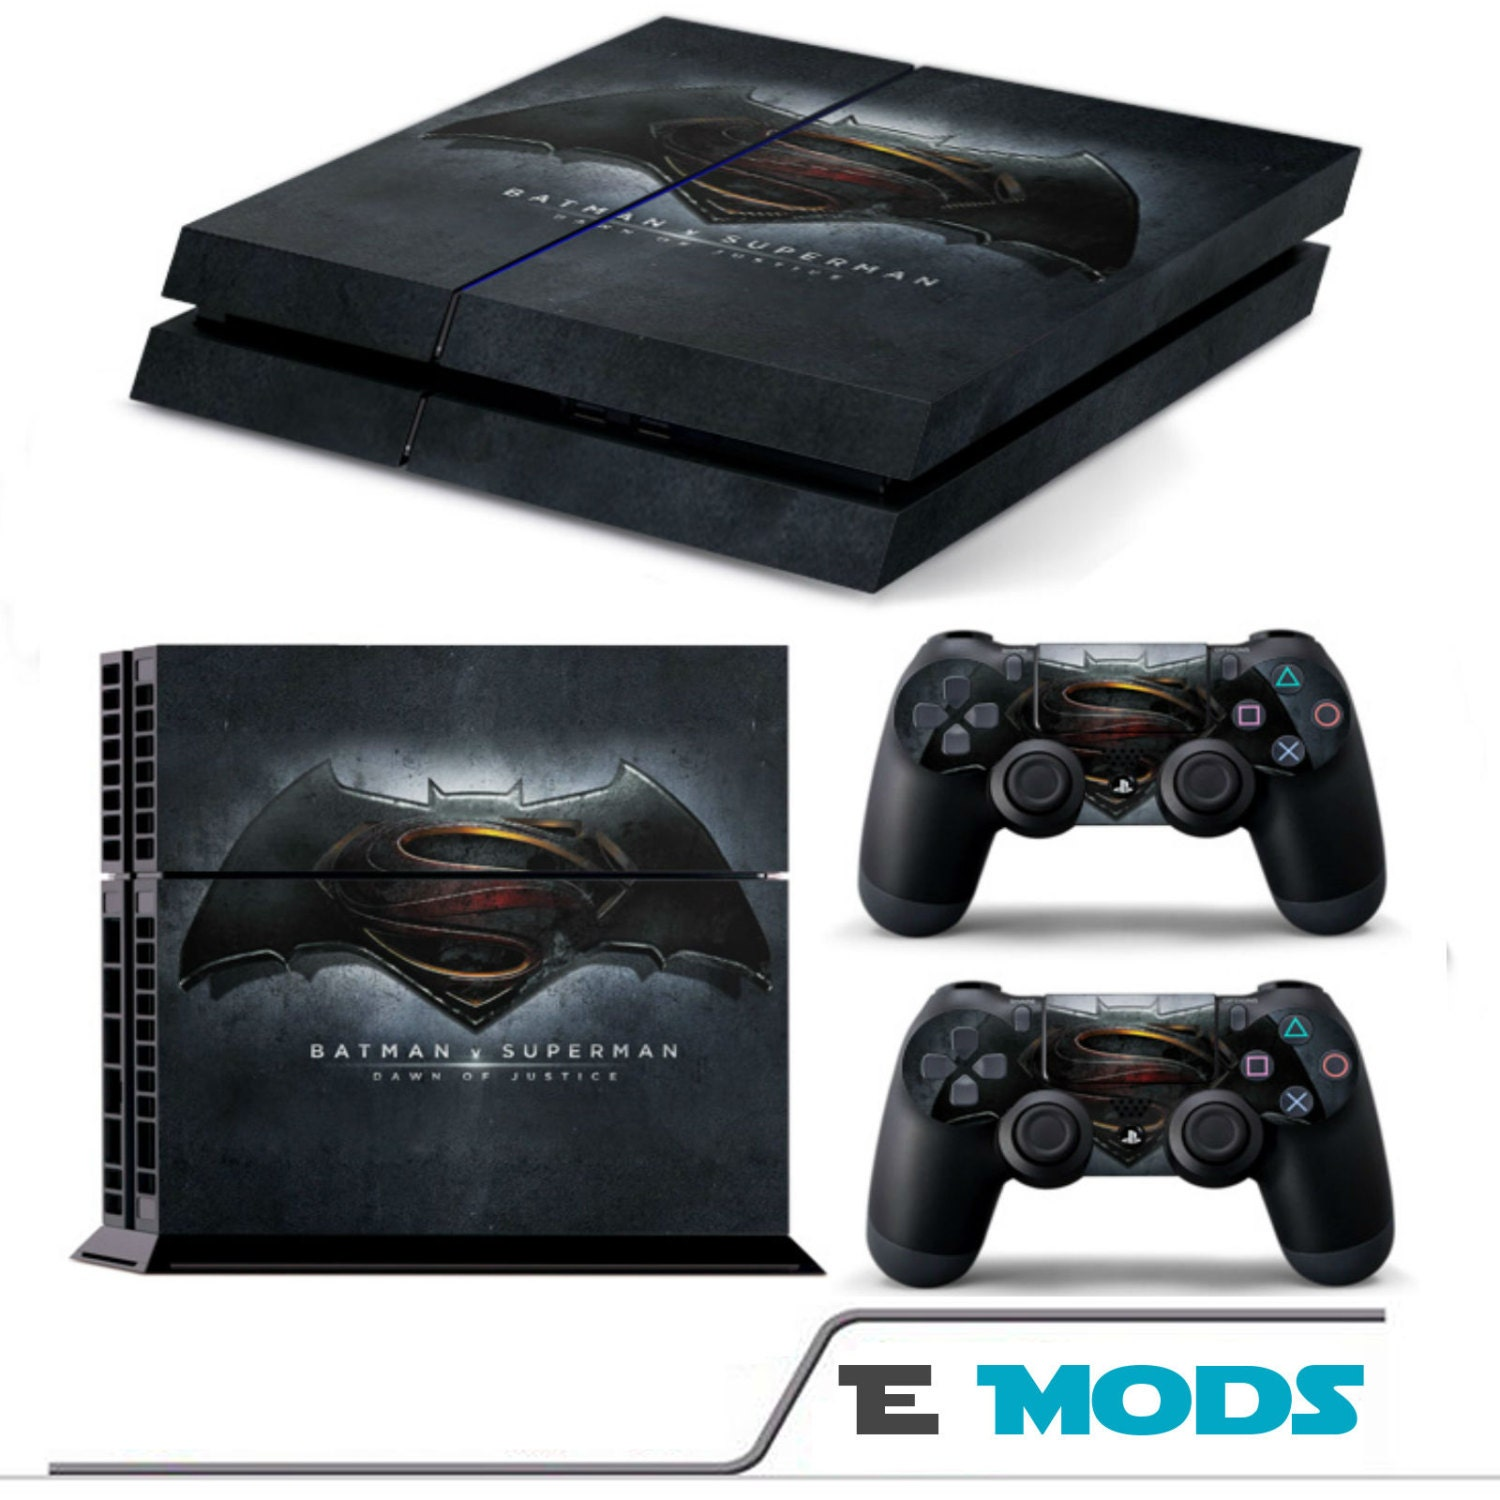 Batman v Superman BvS Playstation 4 PS4 Console Skin Vinyl Graphic decal  2 controller stickers